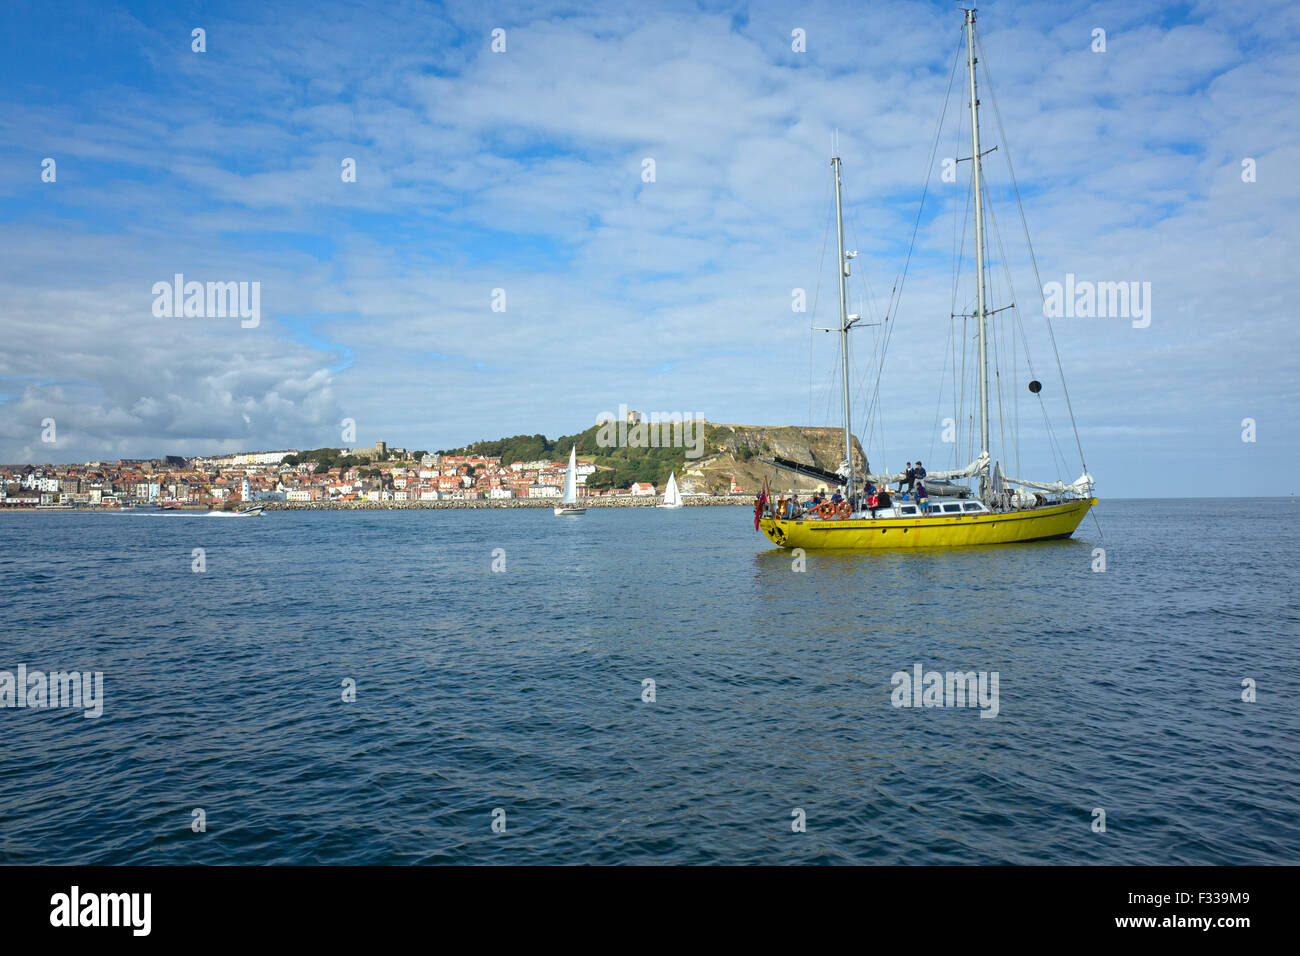 James Cook OYT Ocean Youth Trust Vessel, anchored off Scarborough - Stock Image